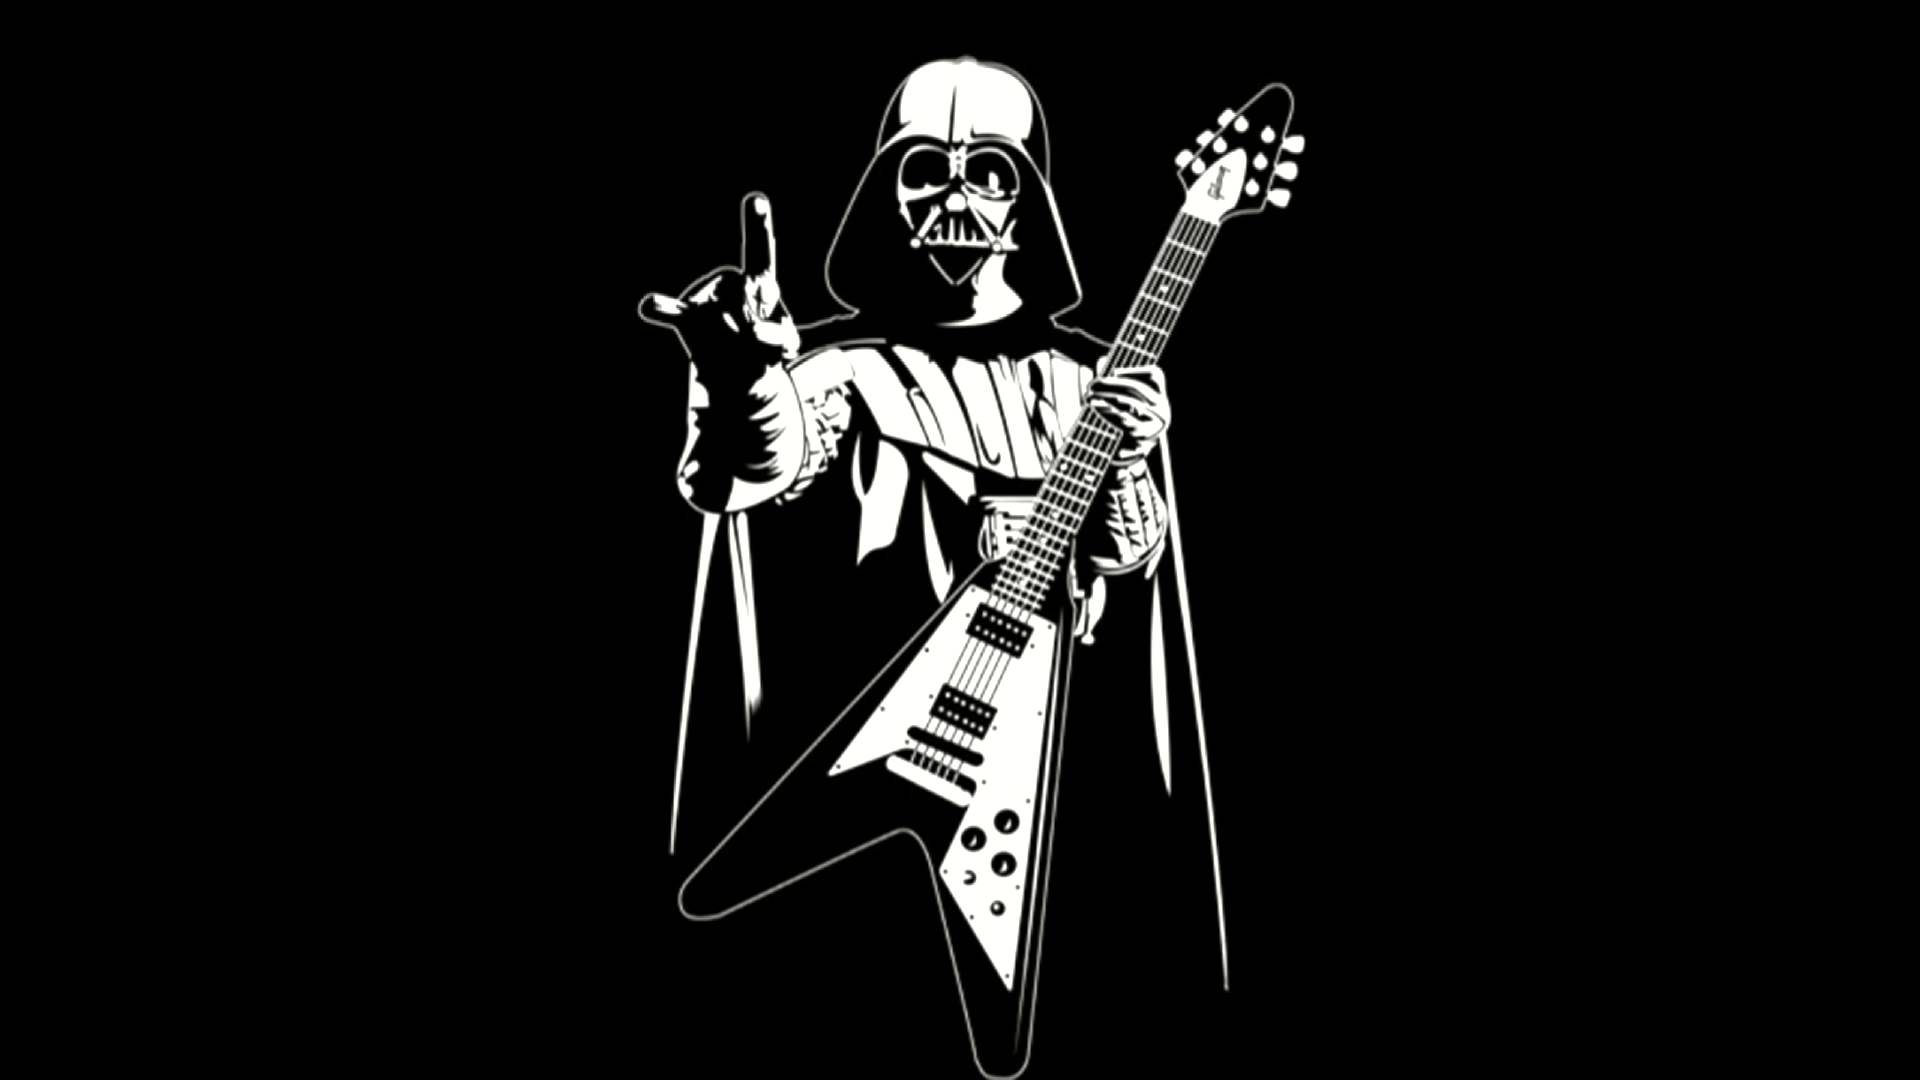 Imperial March - Darth Vader theme (Boma Metal Orchestra)